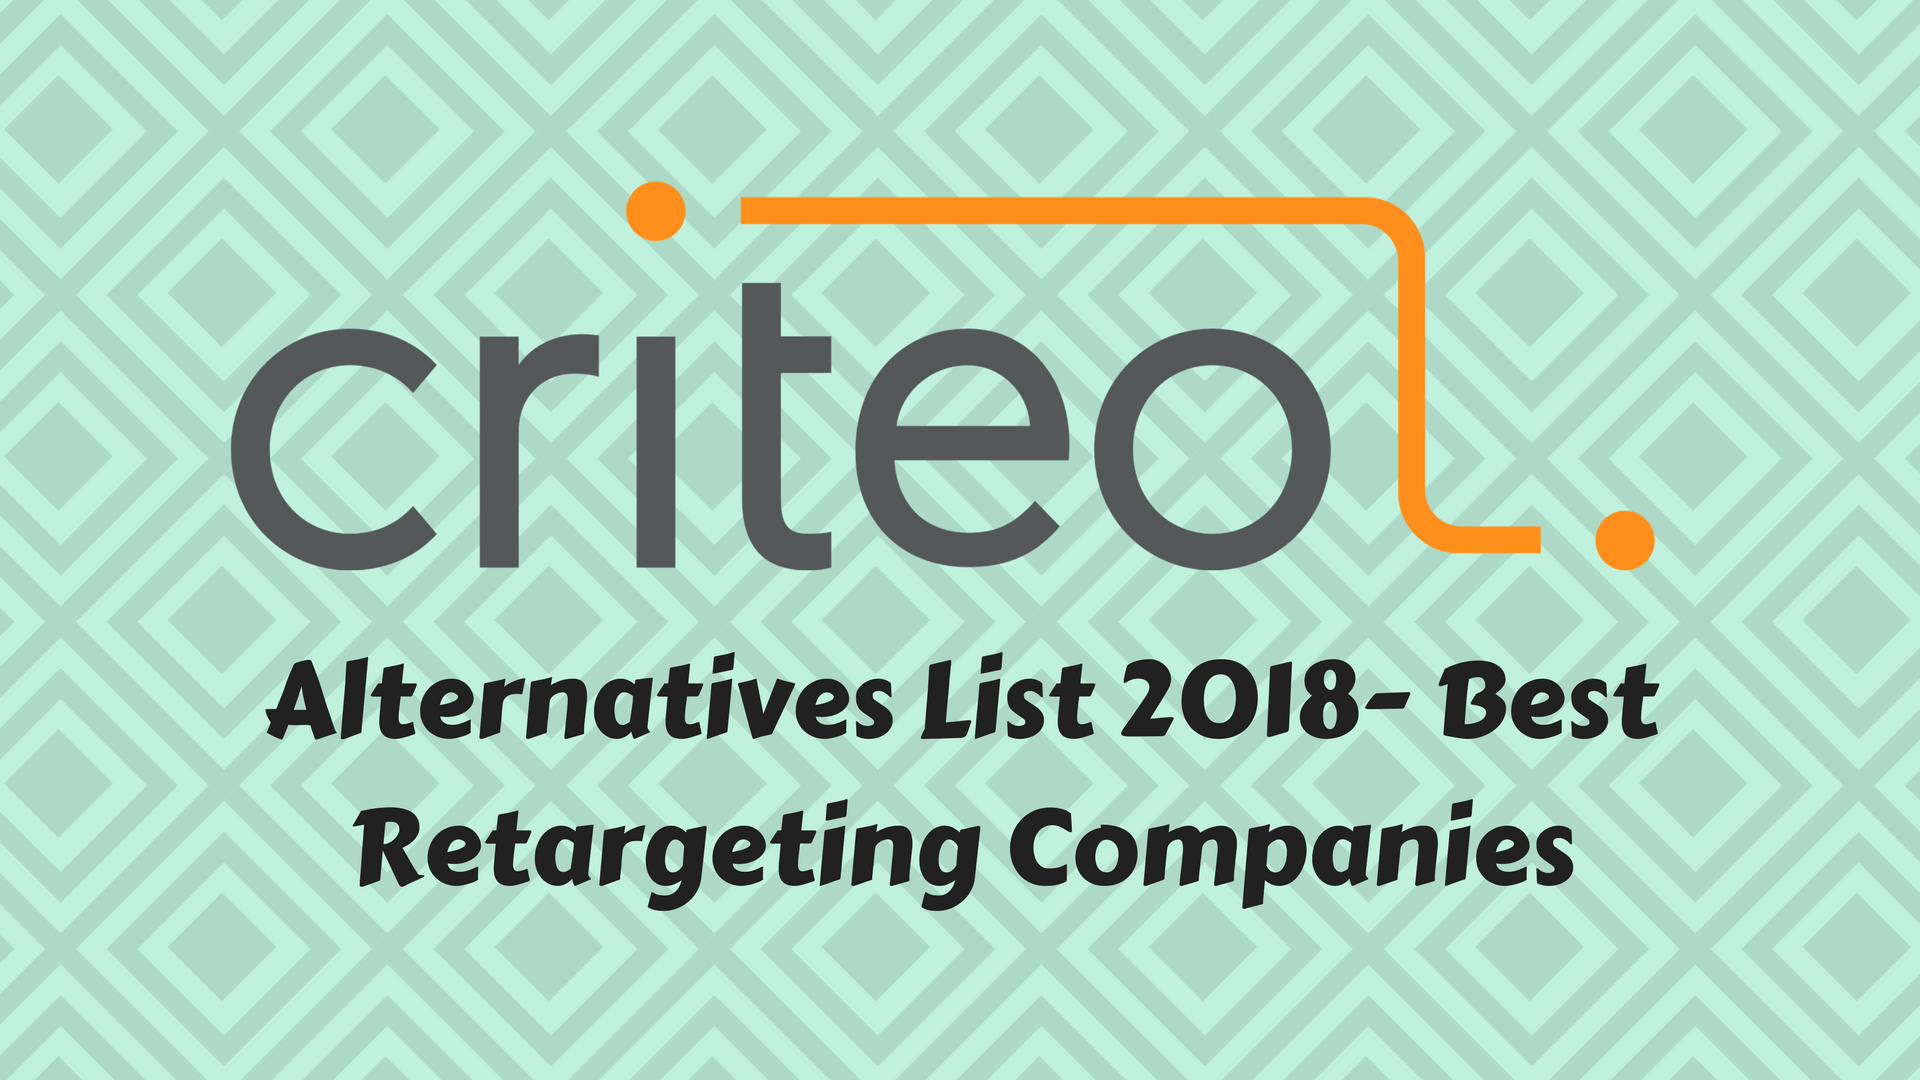 Criteo Alternatives List 2020 for Advertisers